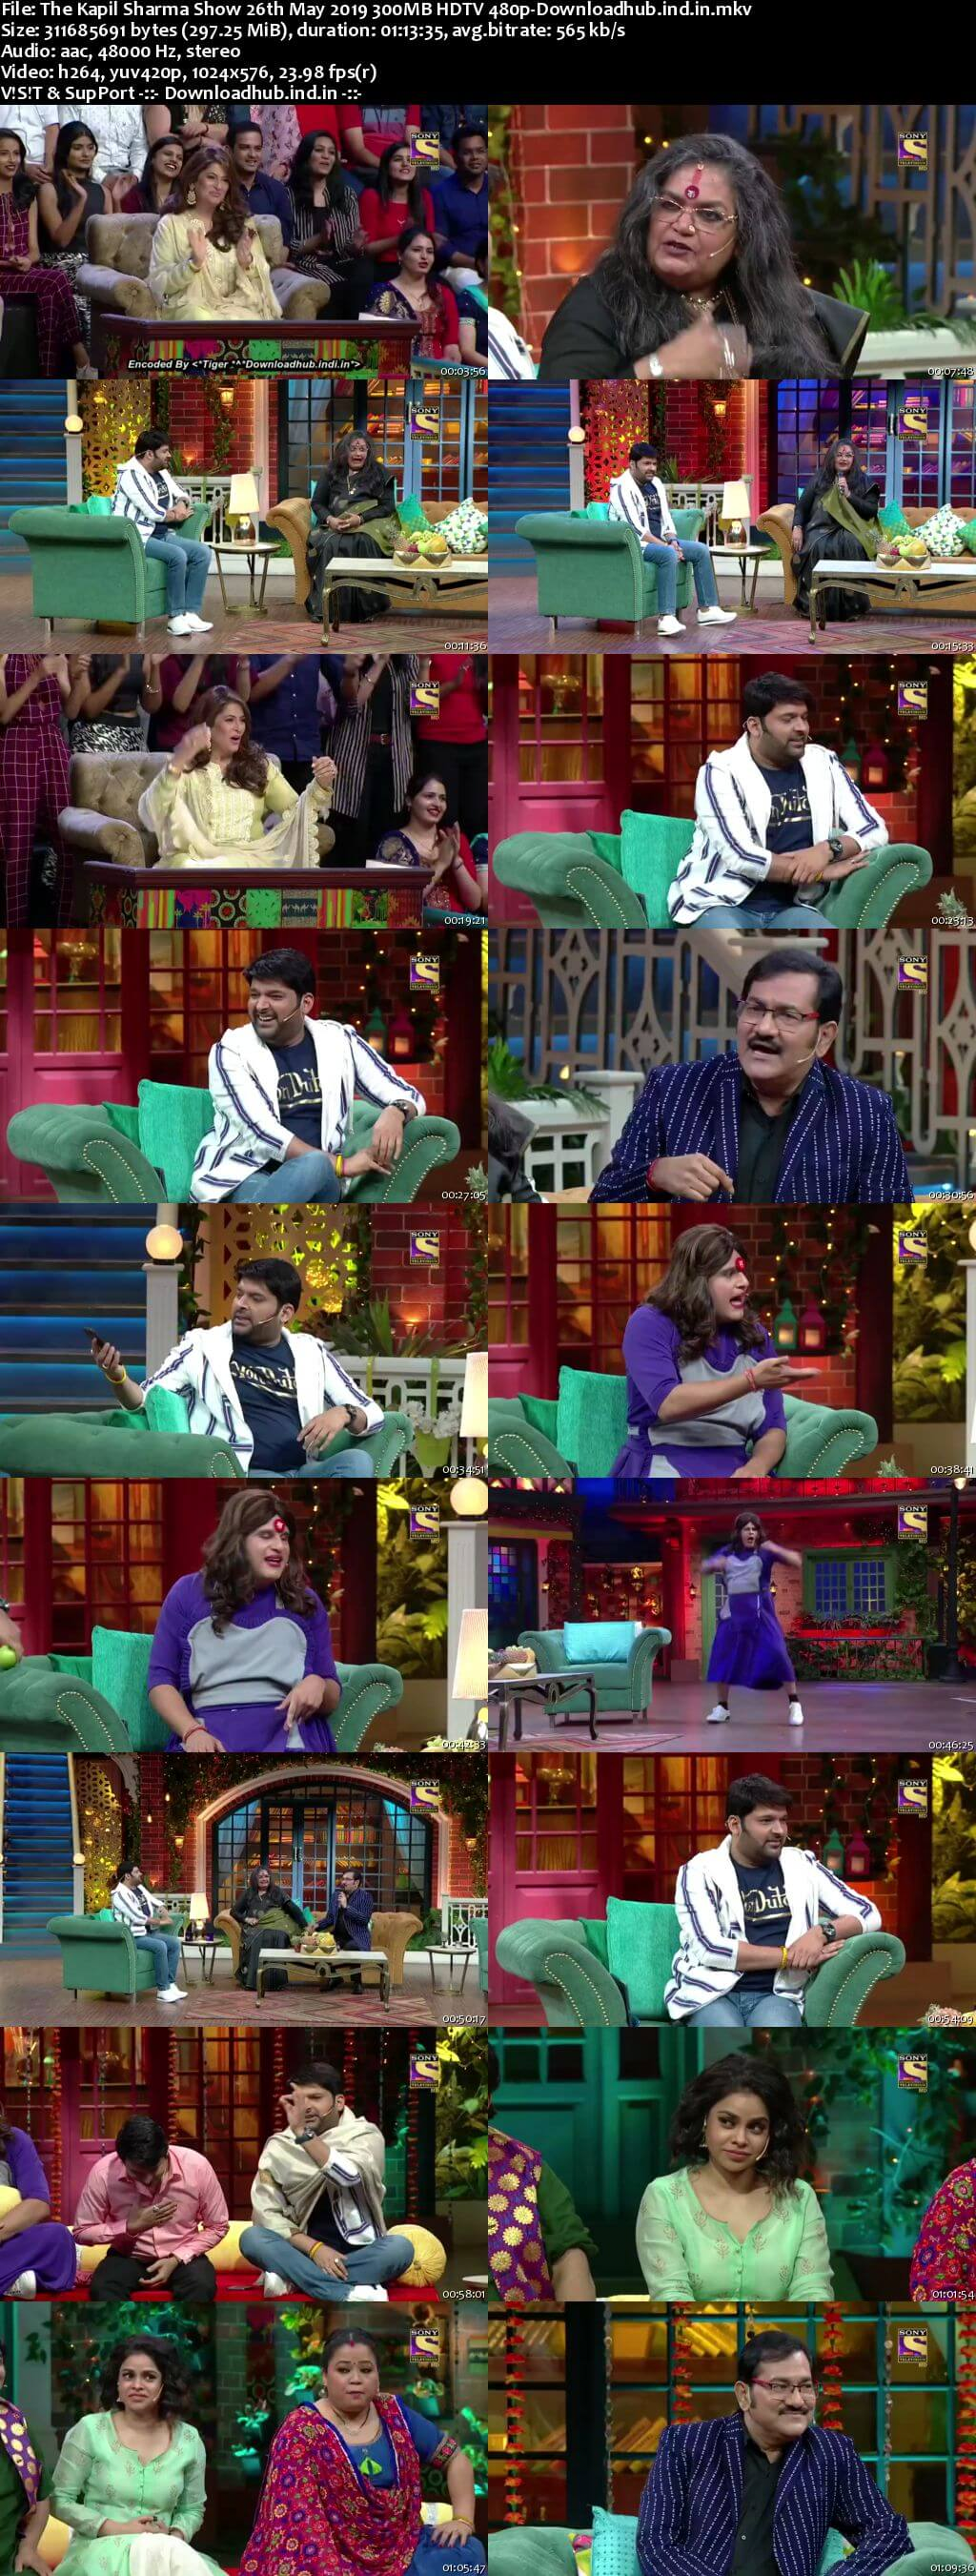 The Kapil Sharma Show 26 May 2019 Episode 44 HDTV 480p